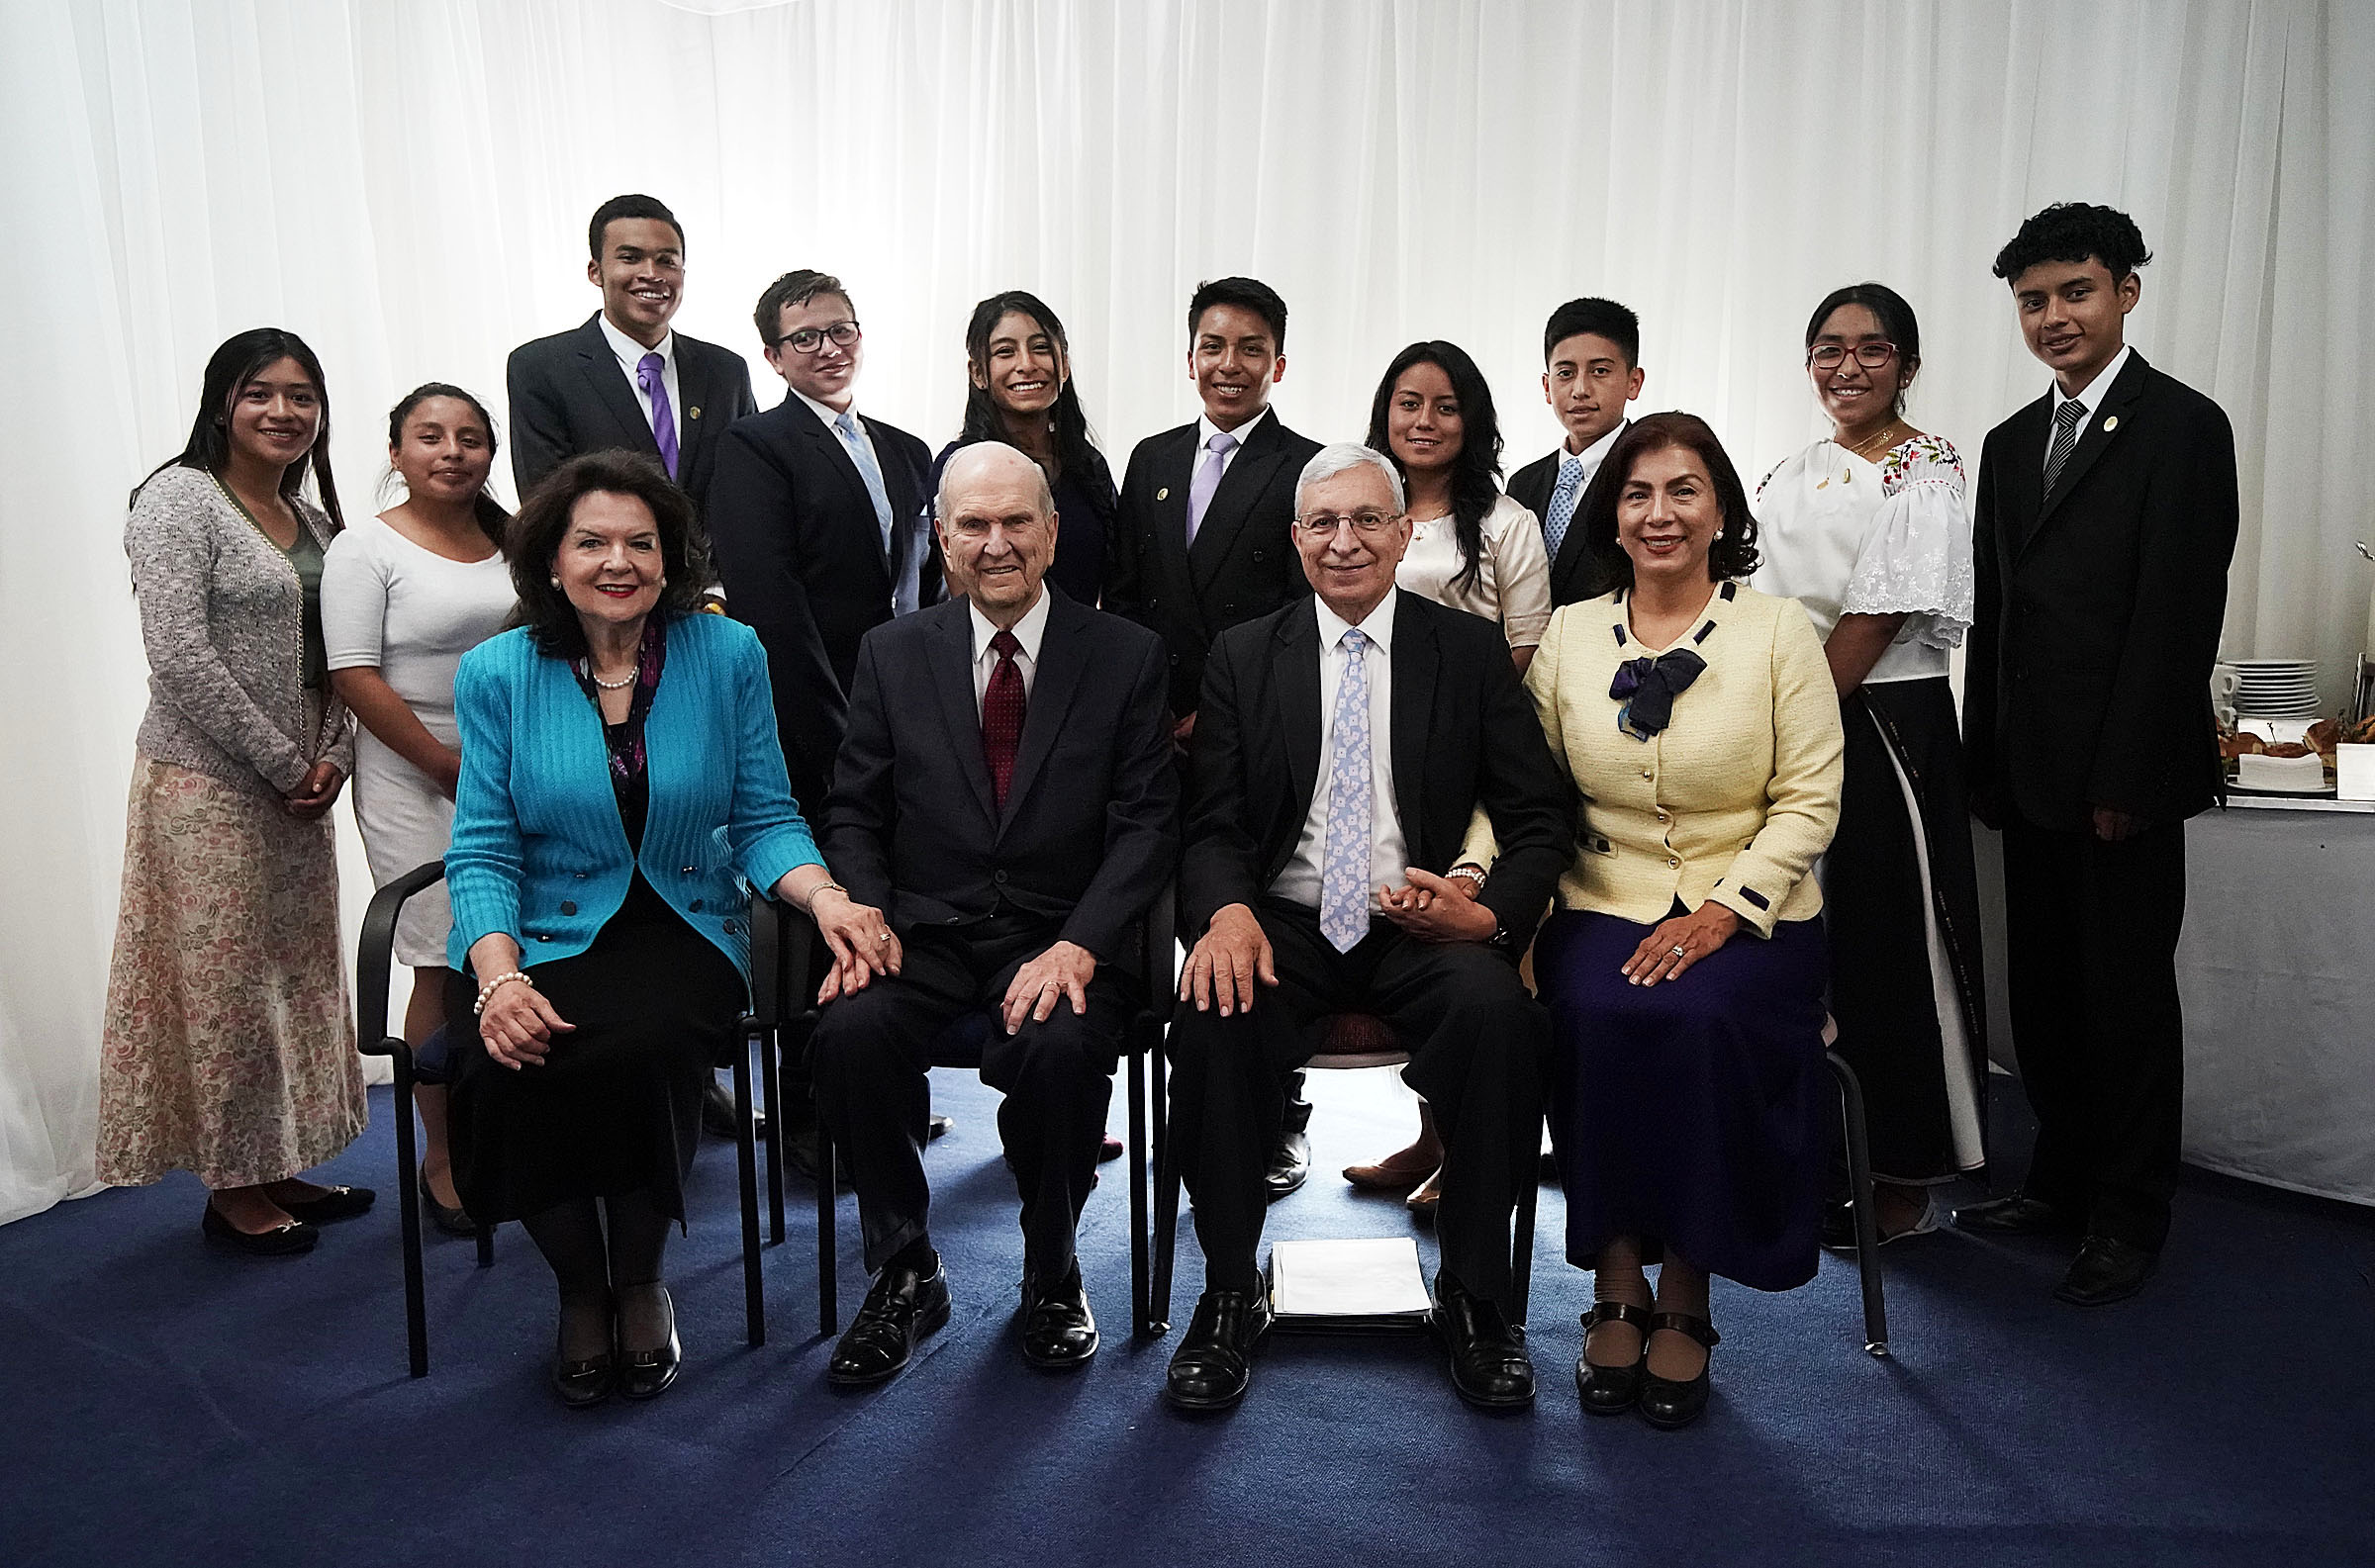 President Russell M. Nelson of The Church of Jesus Christ of Latter-day Saints and his wife, Sister Wendy Nelson, left front, along with Elder Enrique R. Falabella, General Authority Seventy, and his wife, Sister Ruth Falabella, pose for a photo with youth before a Latin America Ministry Tour devotional in Quito, Ecuador, on Monday, Aug. 26, 2019.